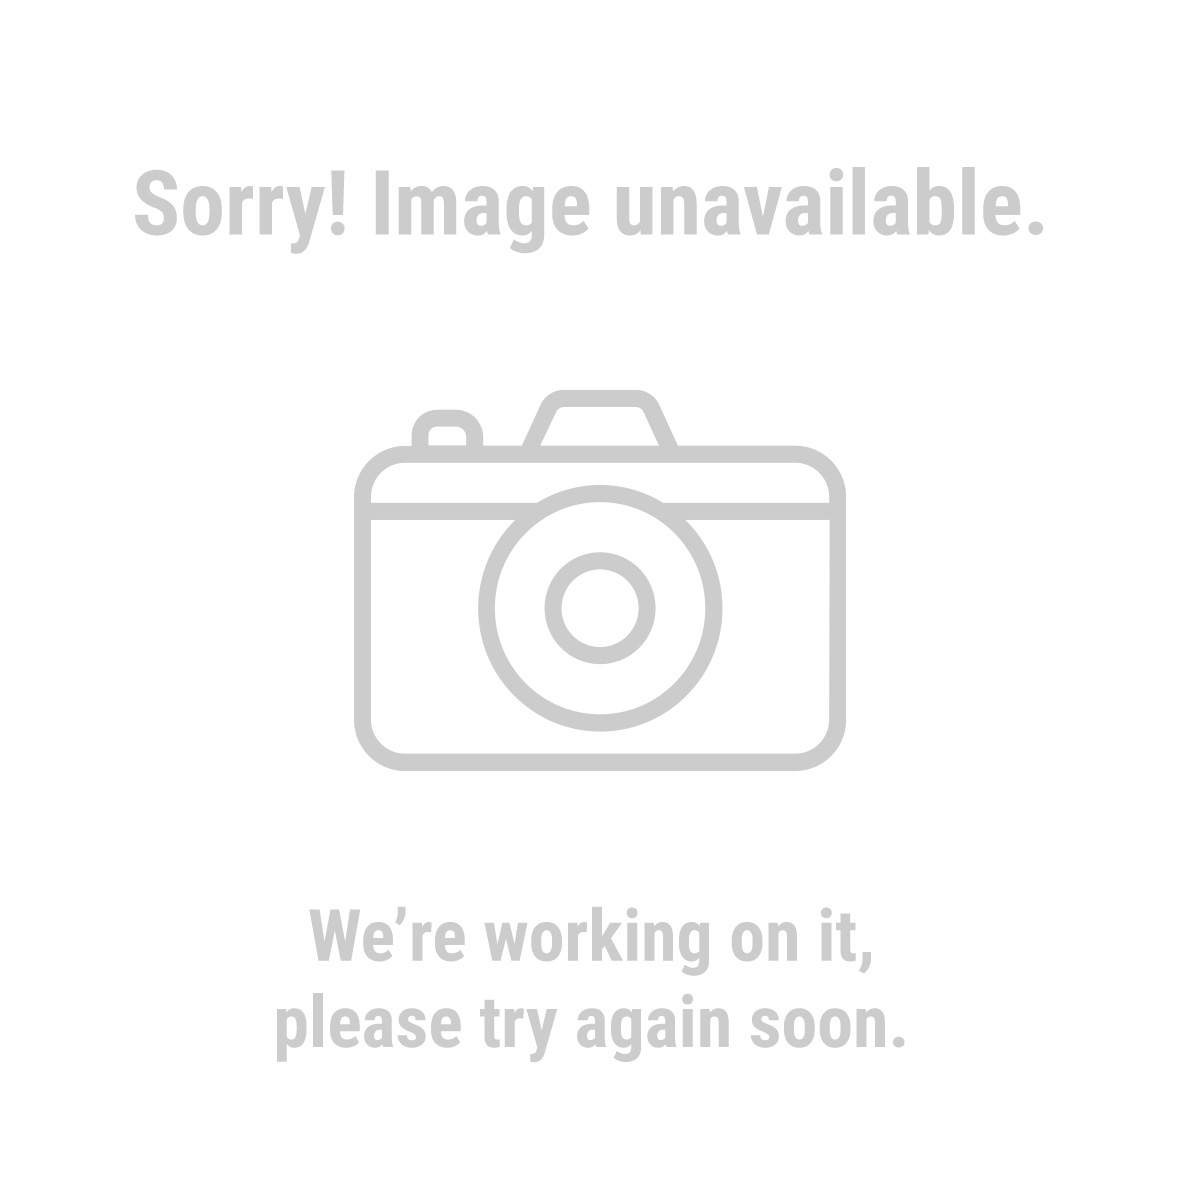 2 Speed Benchtop Mill Drill Machine